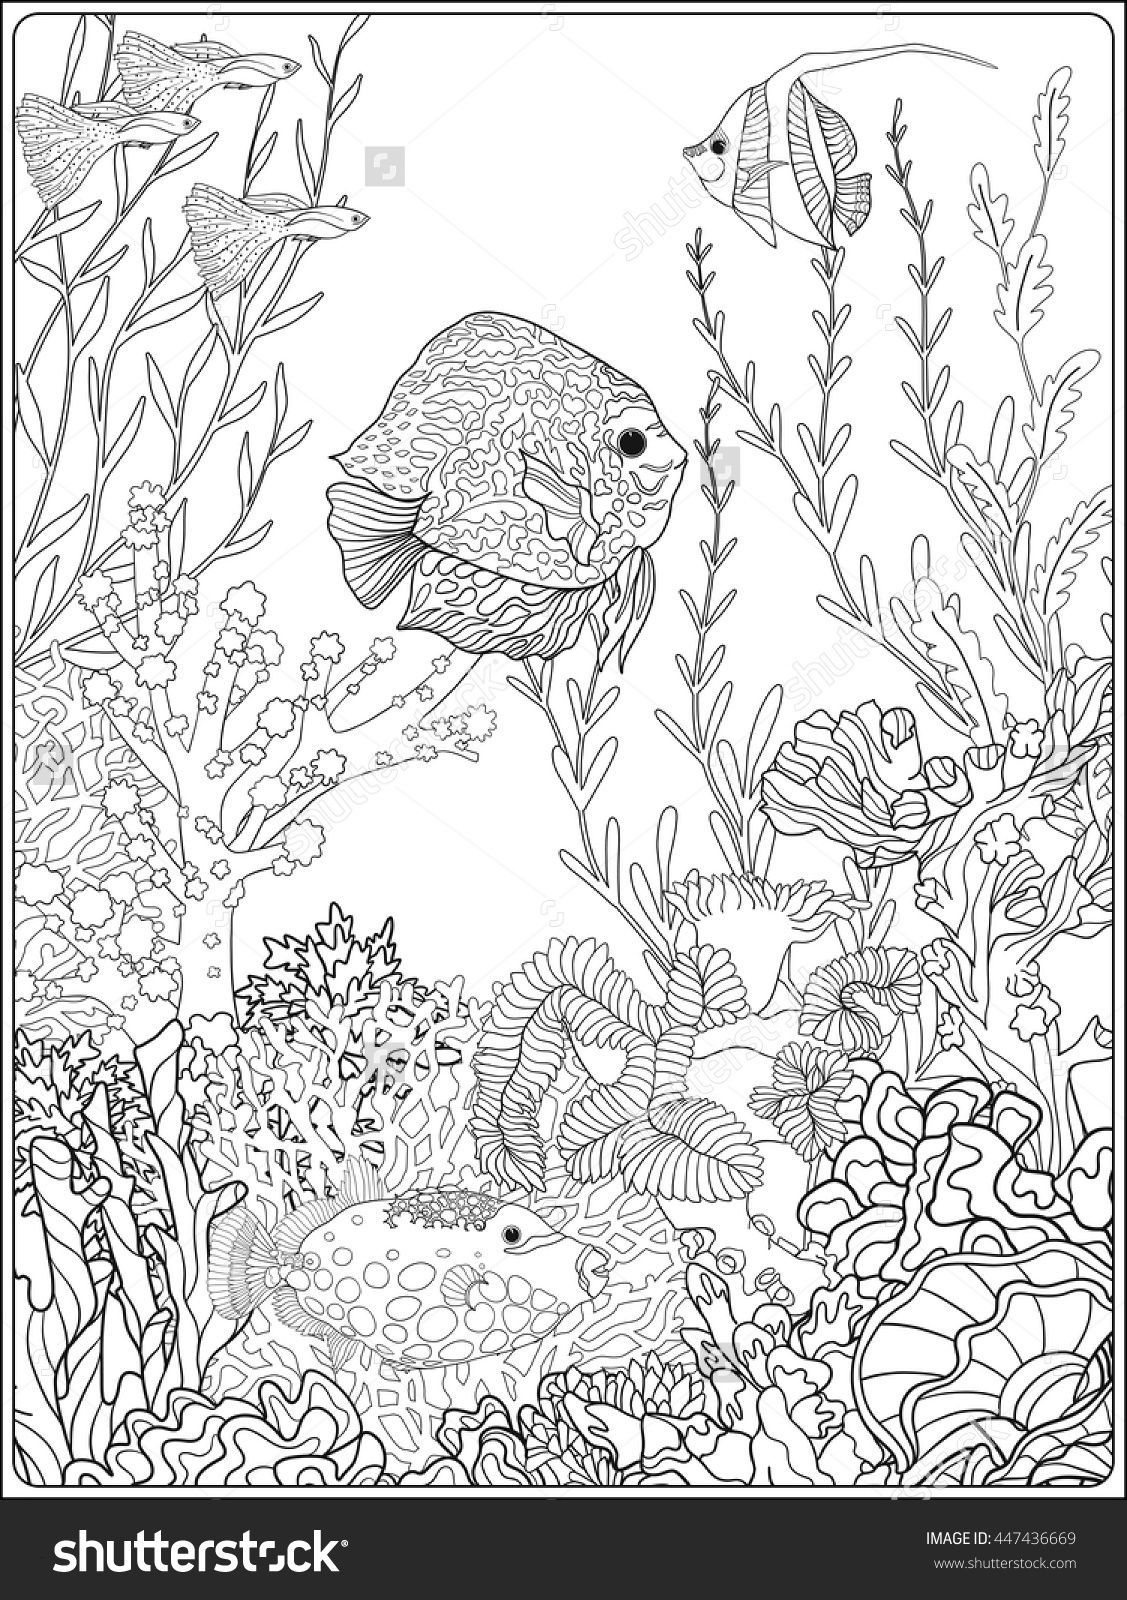 Image result for underwater kingdom coloring | Detailed ...